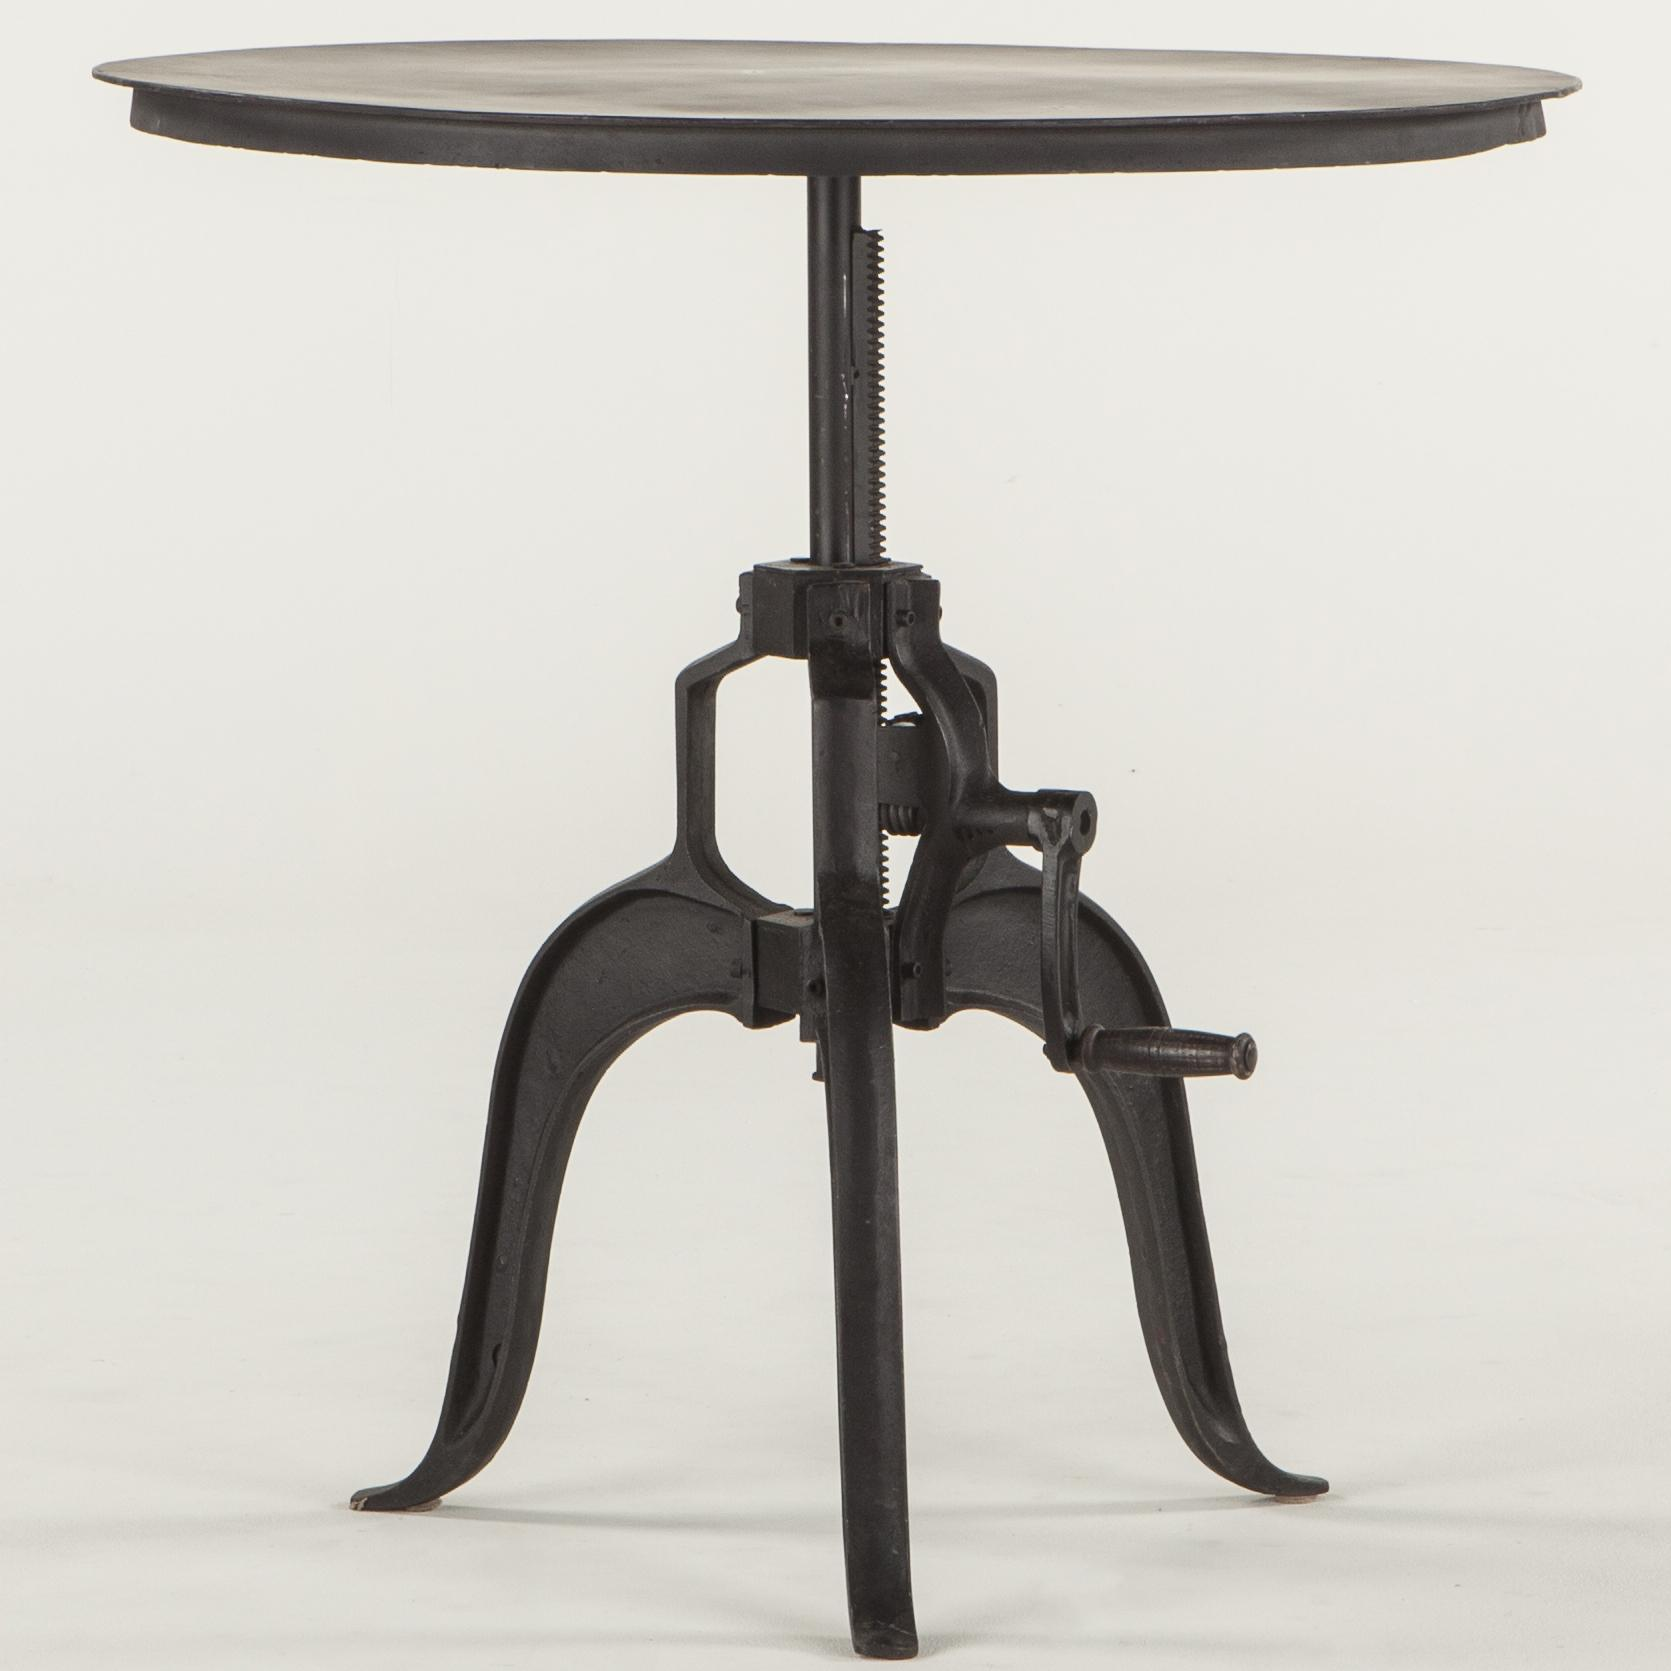 BeGlobal Industrial Loft Round Pub Table - Item Number: FIL-ST30